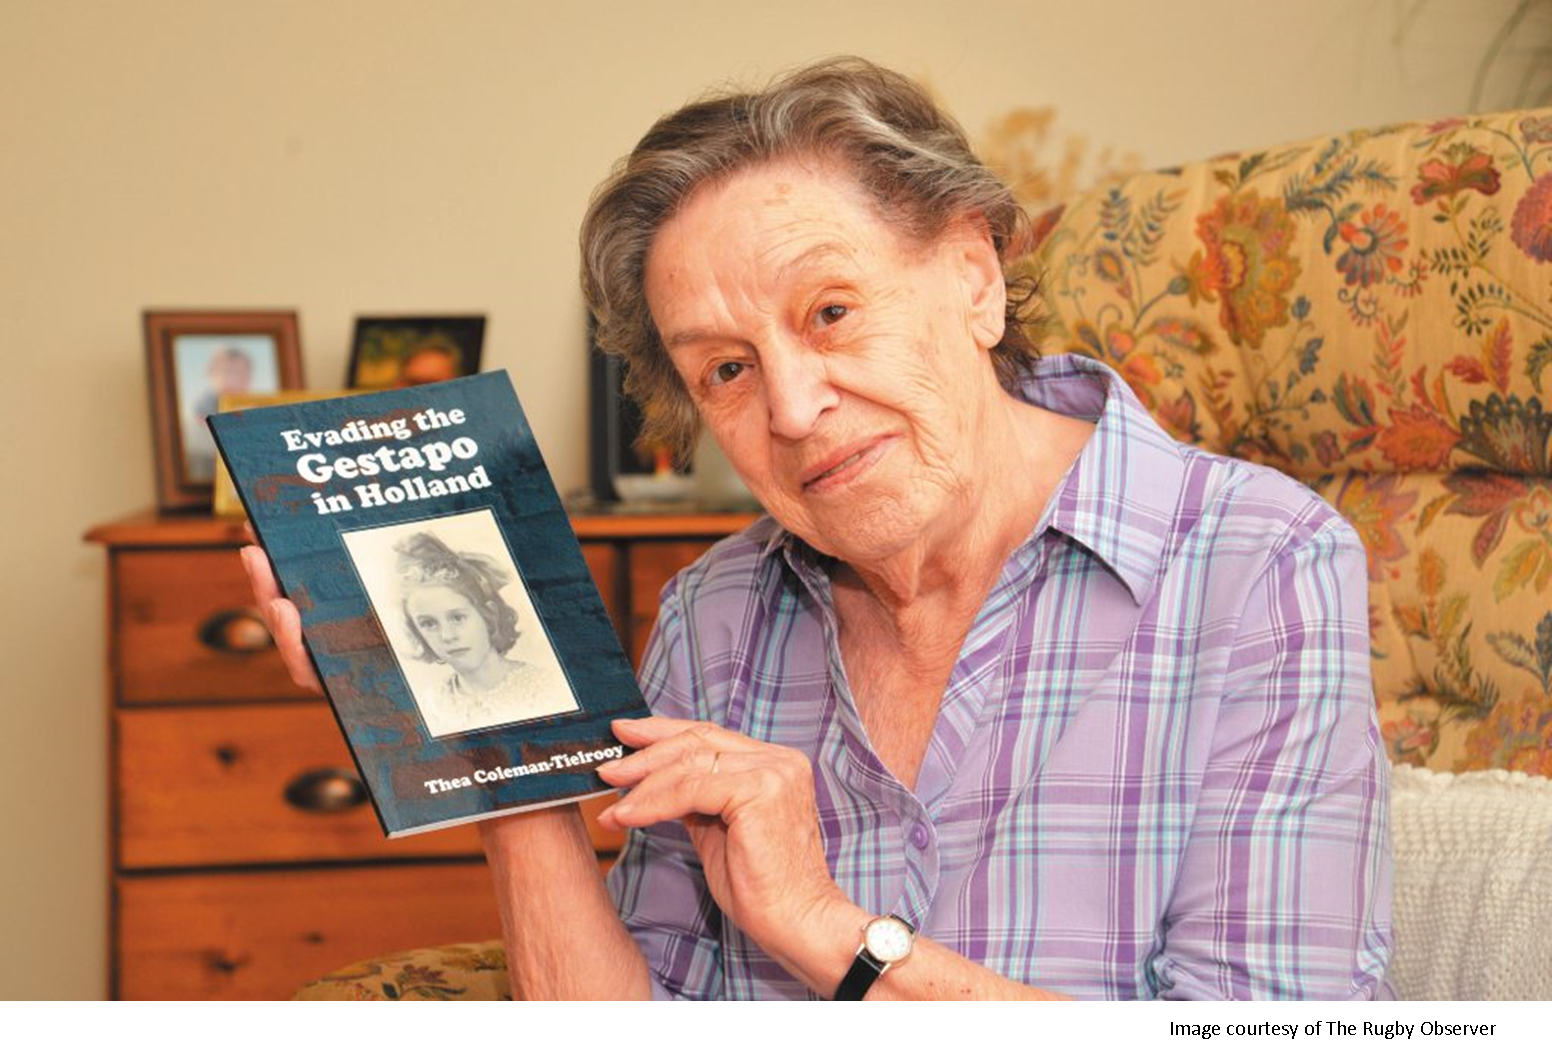 Thea Coleman-Tielrooy - Evading the Gestapo in Holland